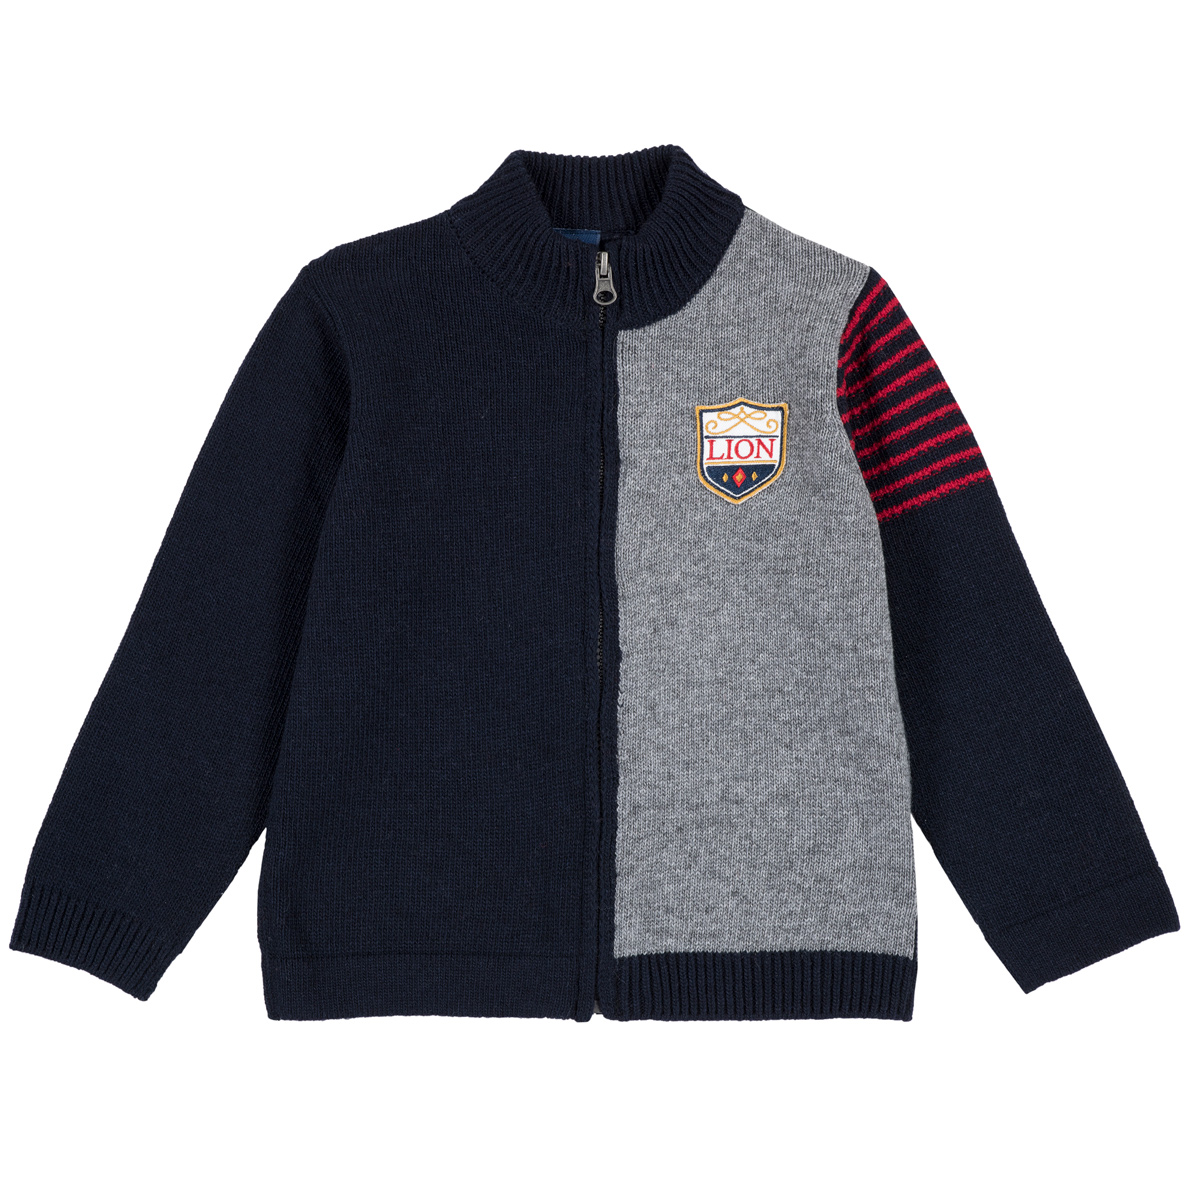 Cardigan copii Chicco, tricotat, blazon cusut, 96980 din categoria Cardigan copii